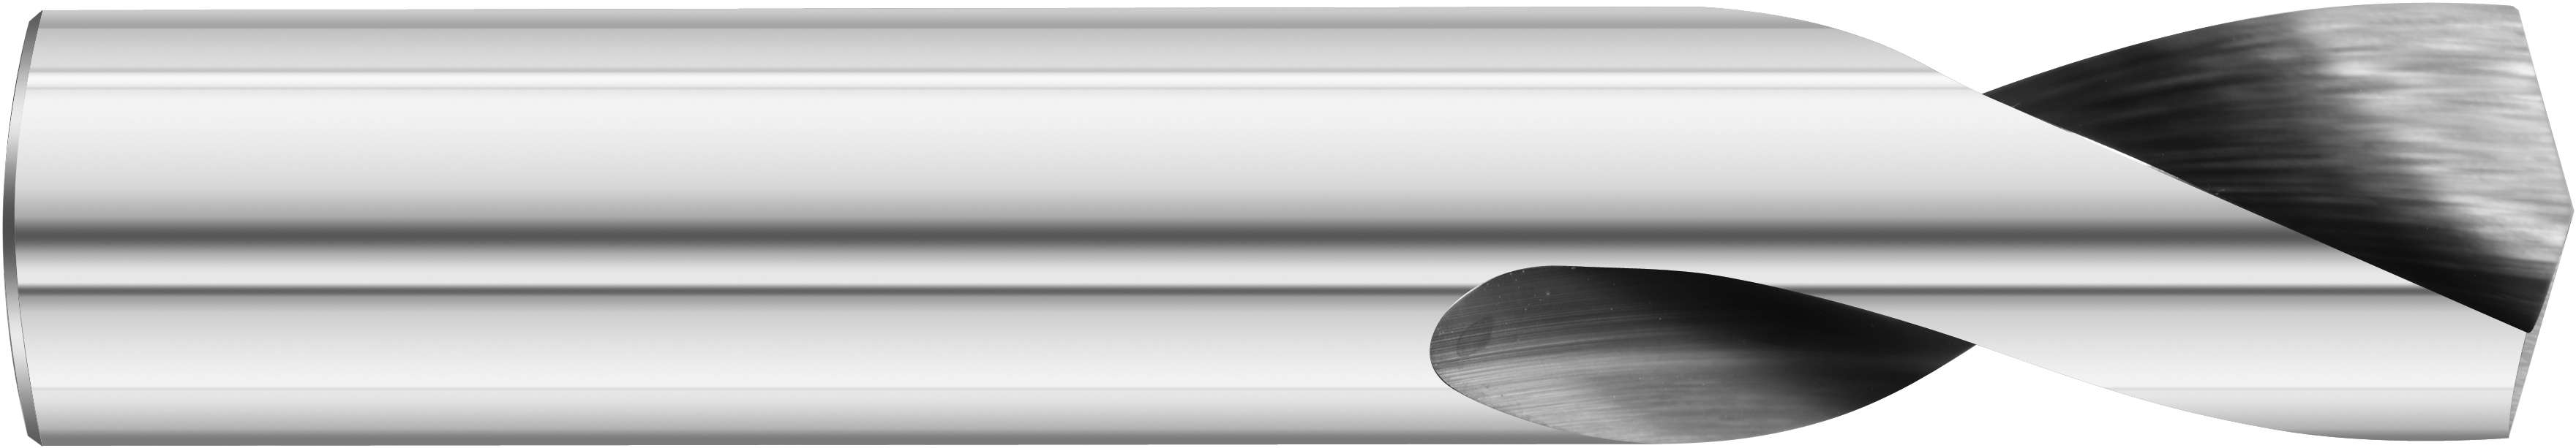 1/8 Solid Carbide Nc Spotting Dril 5xd Length Cam Relieved Se – 15736